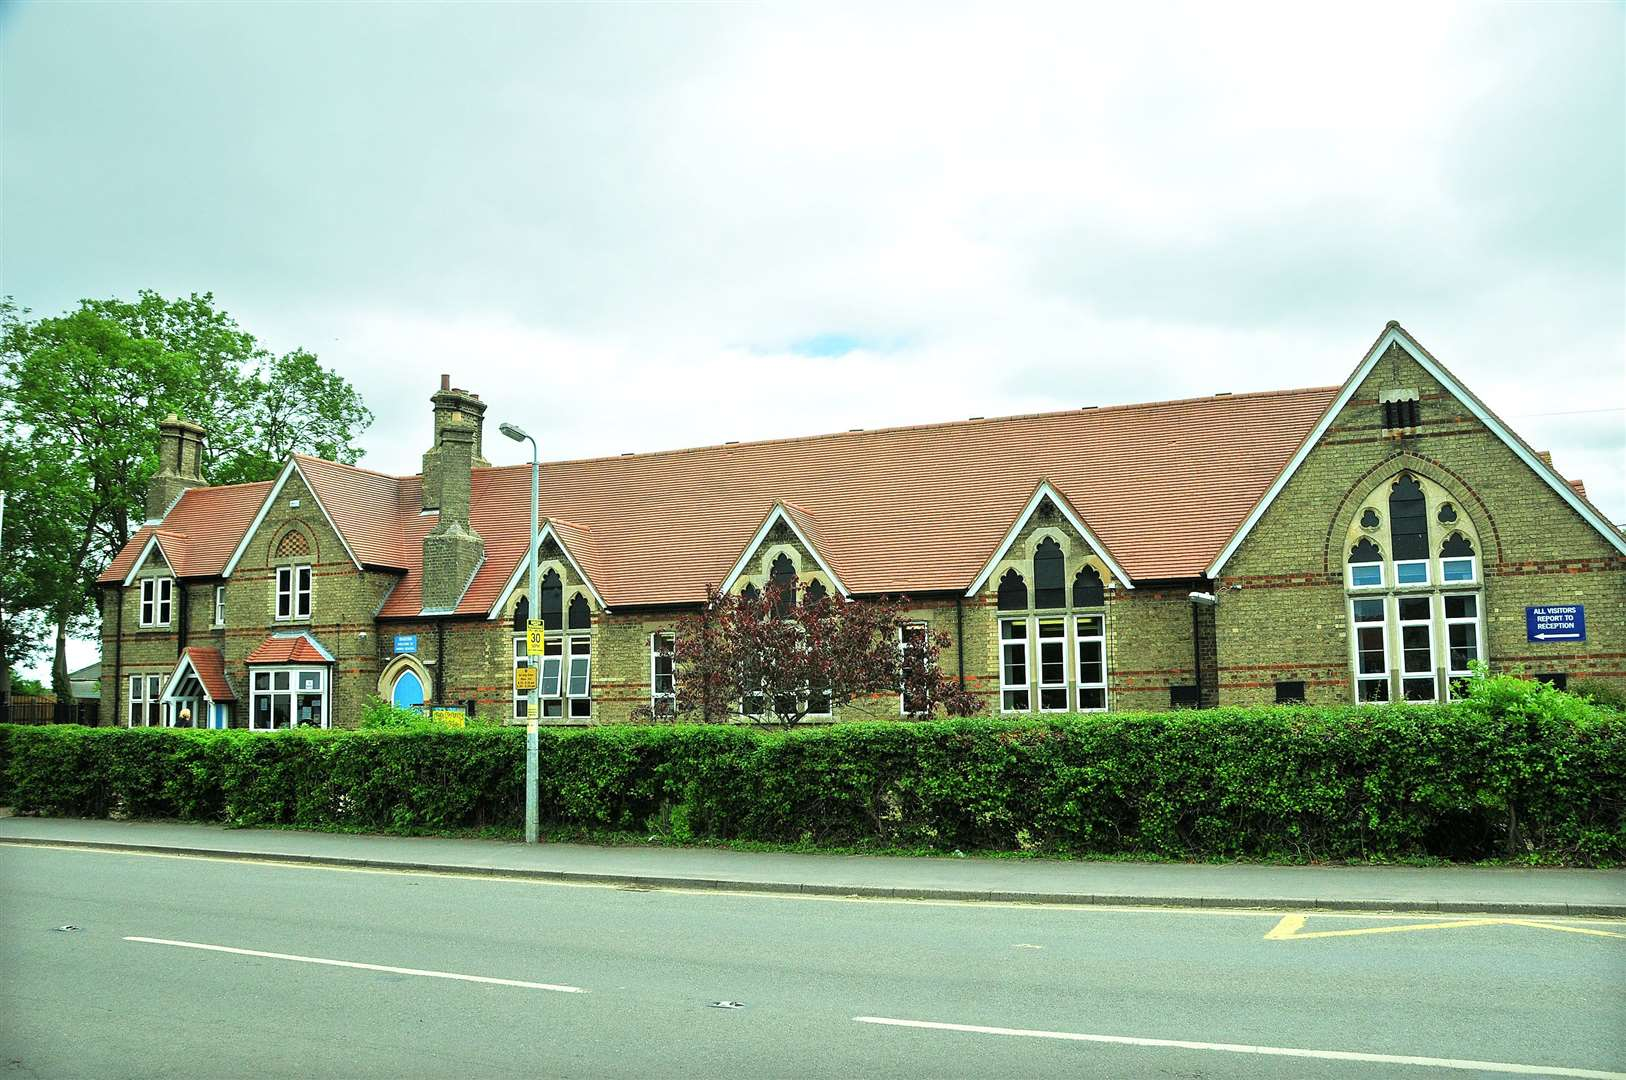 Manea school has been rated still 'Good' by Ofsted.